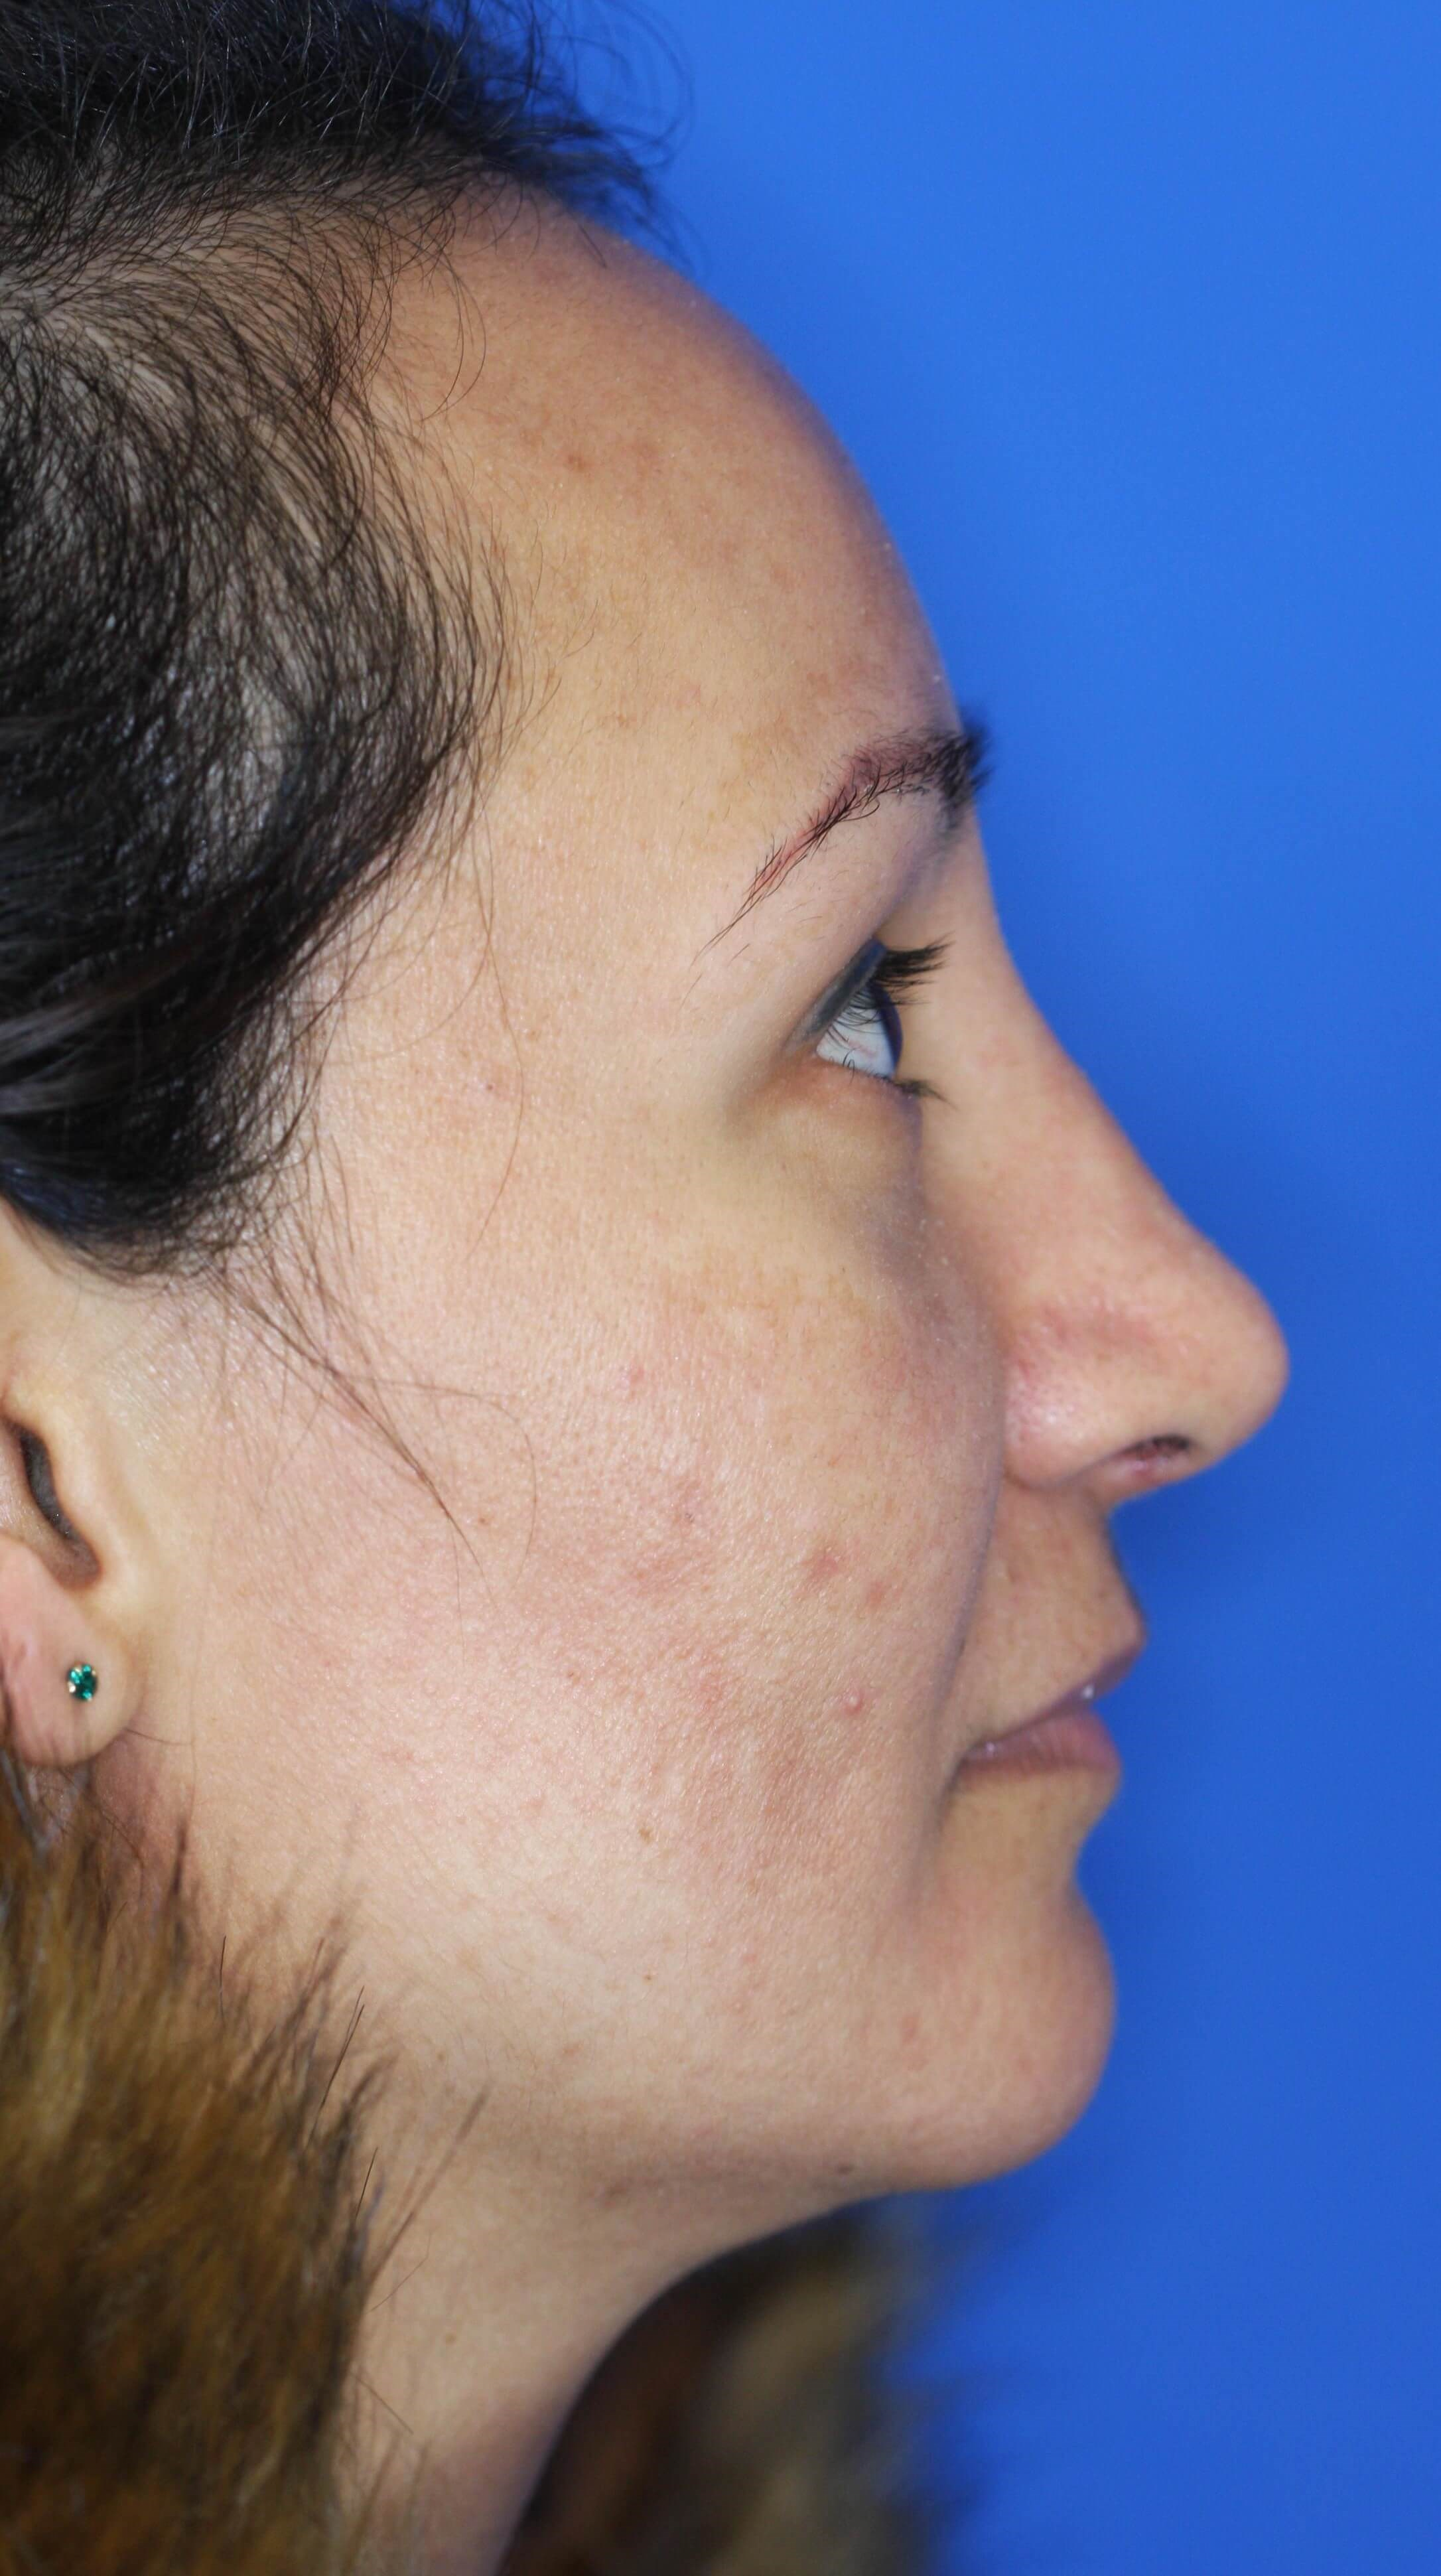 Rhinoplasty, Downers Grove, IL 3 months postop